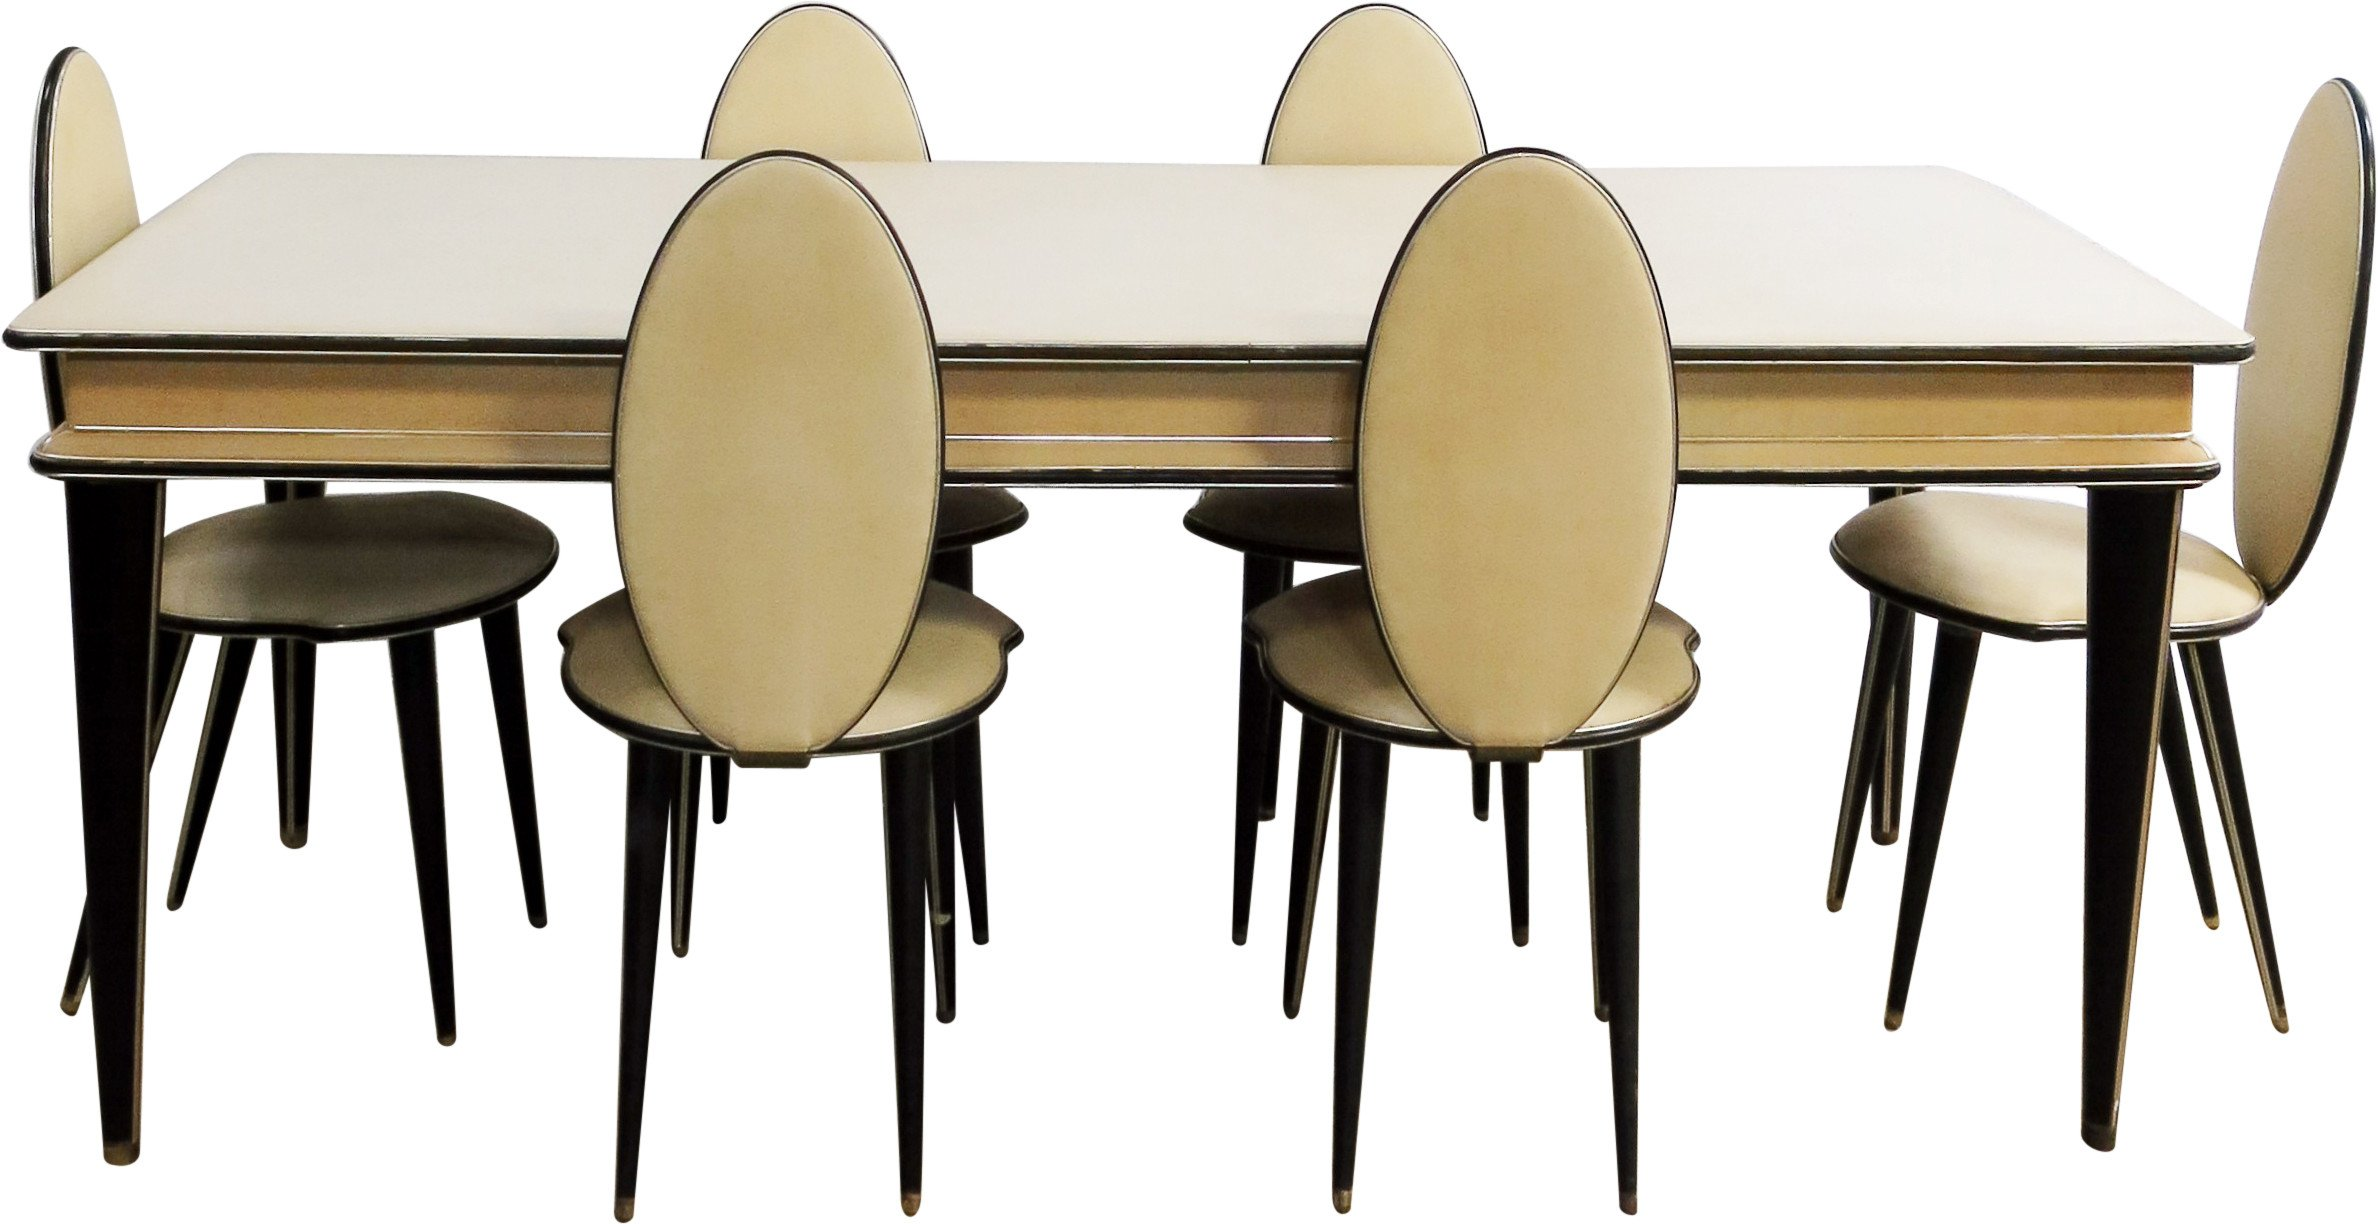 Dining Set by U. Mascagni, Harrods, 1950s